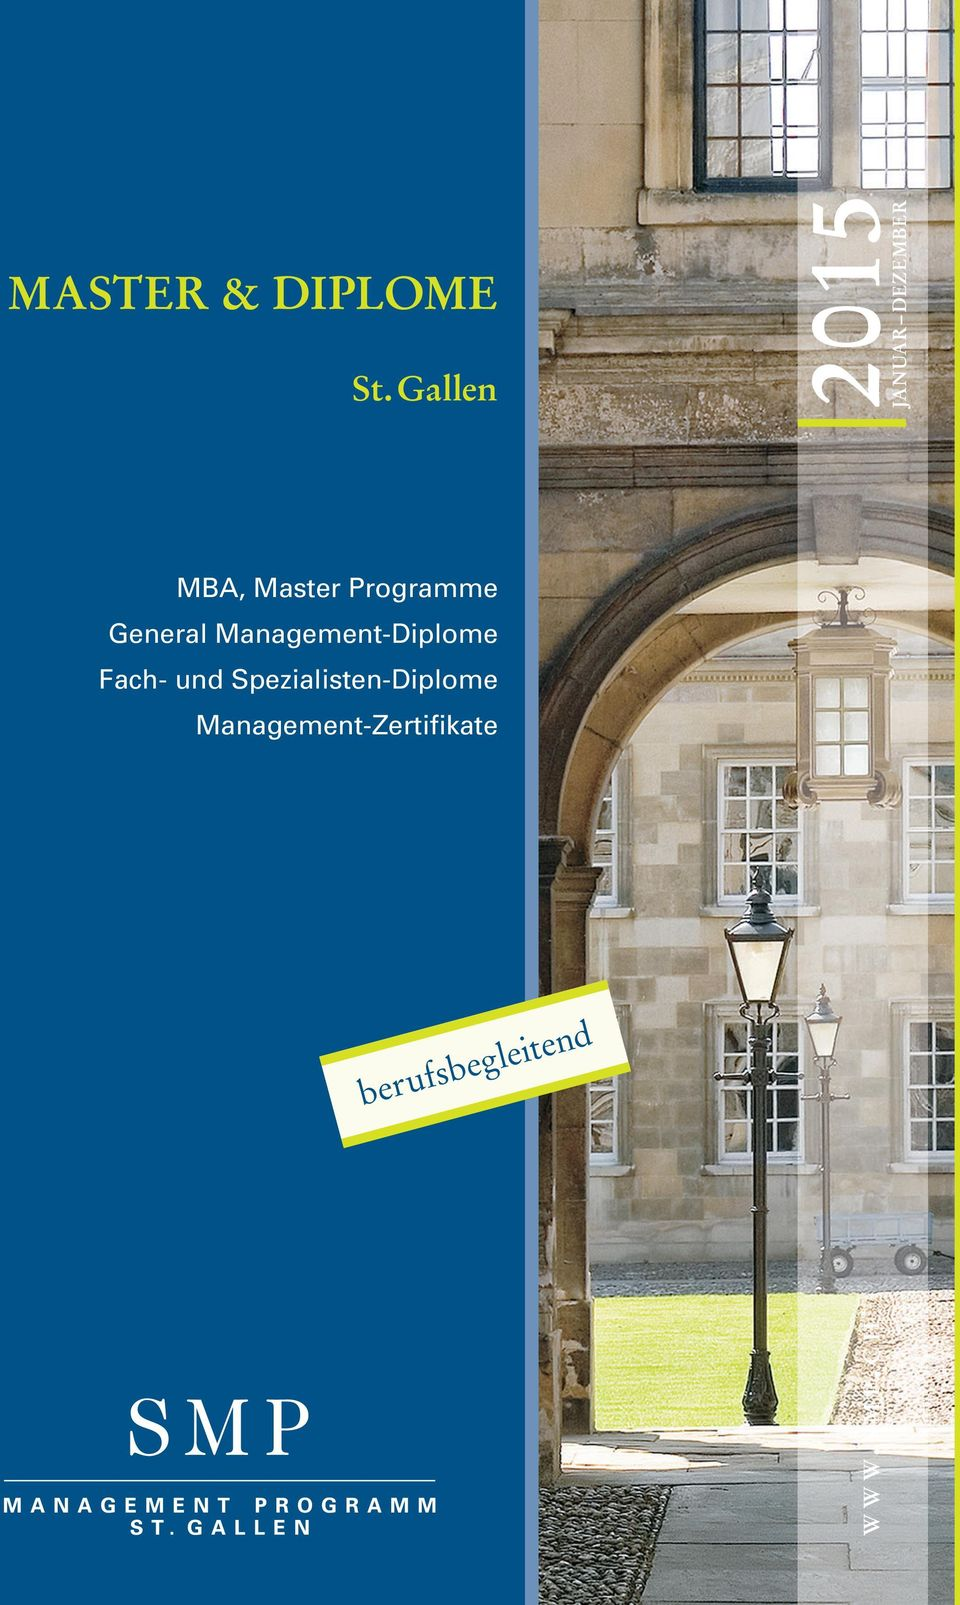 c H MBA, Master Programme General